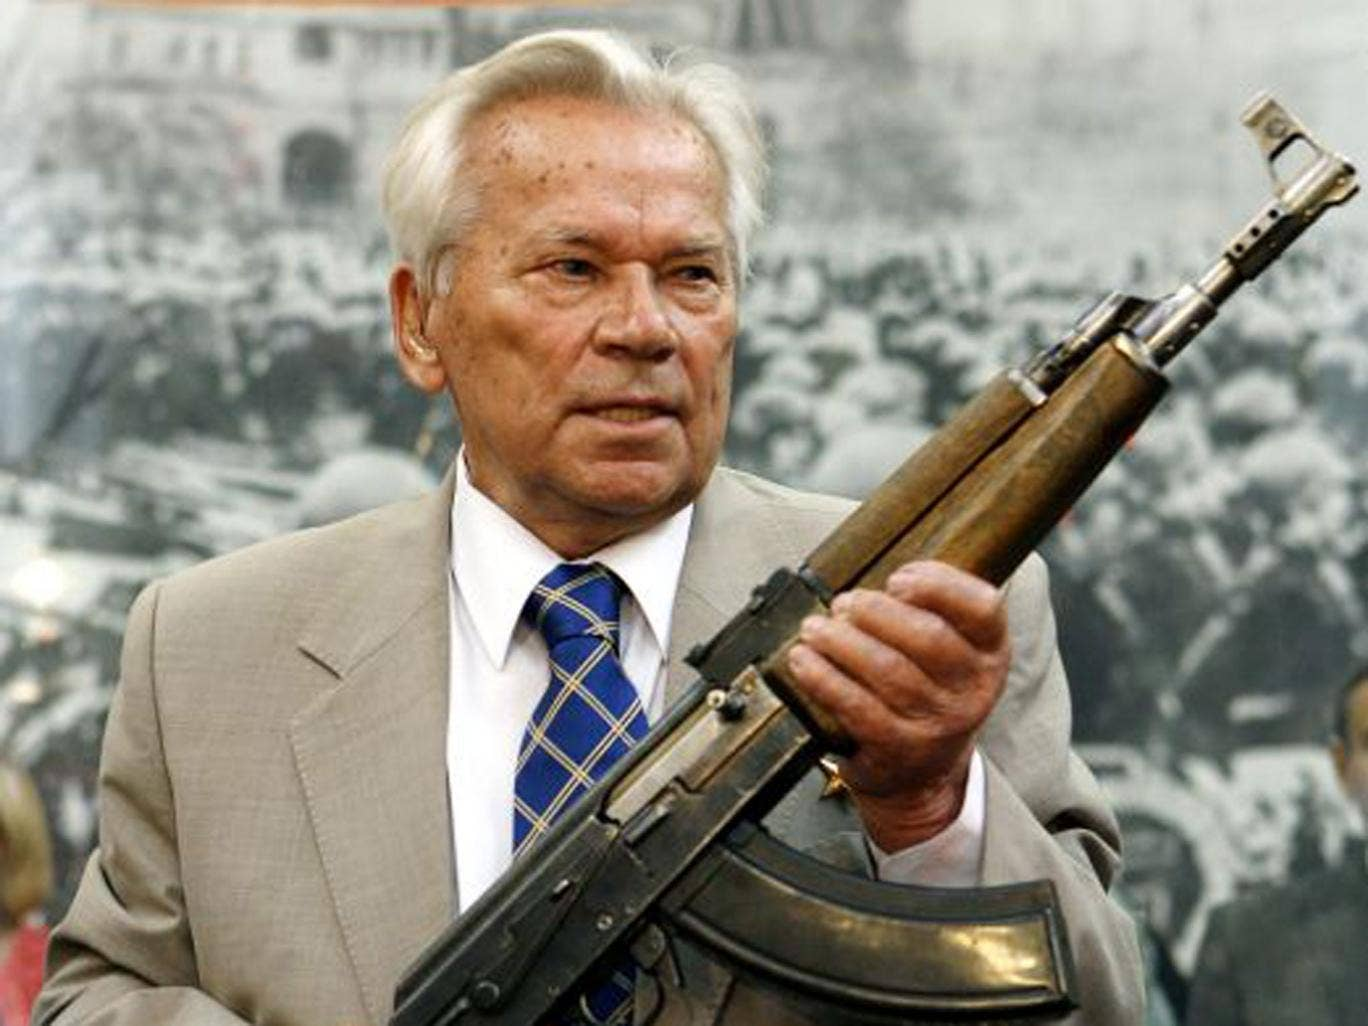 Kalashnikov with his creation, the most successful assault rifle ever made